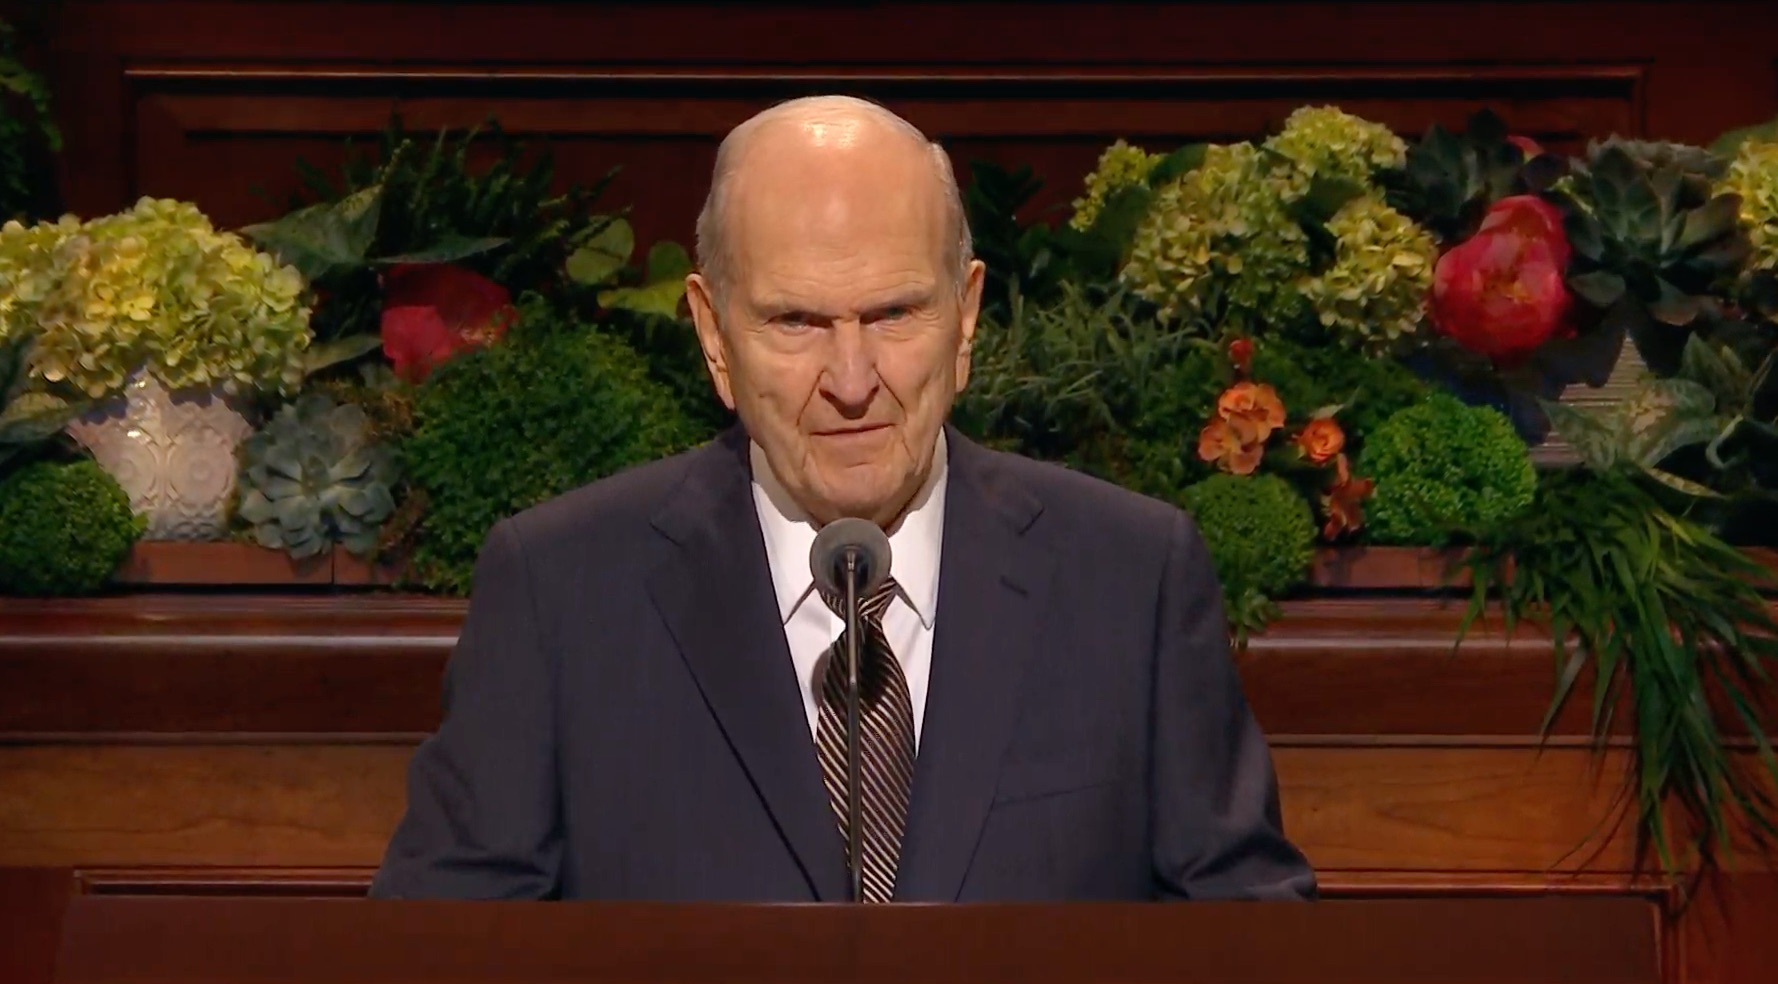 President Russell M. Nelson, president of The Church of Jesus Christ of Latter-day Saints, gives his address during the Sunday afternoon session of the 189th Annual General Conference on April 7, 2019.